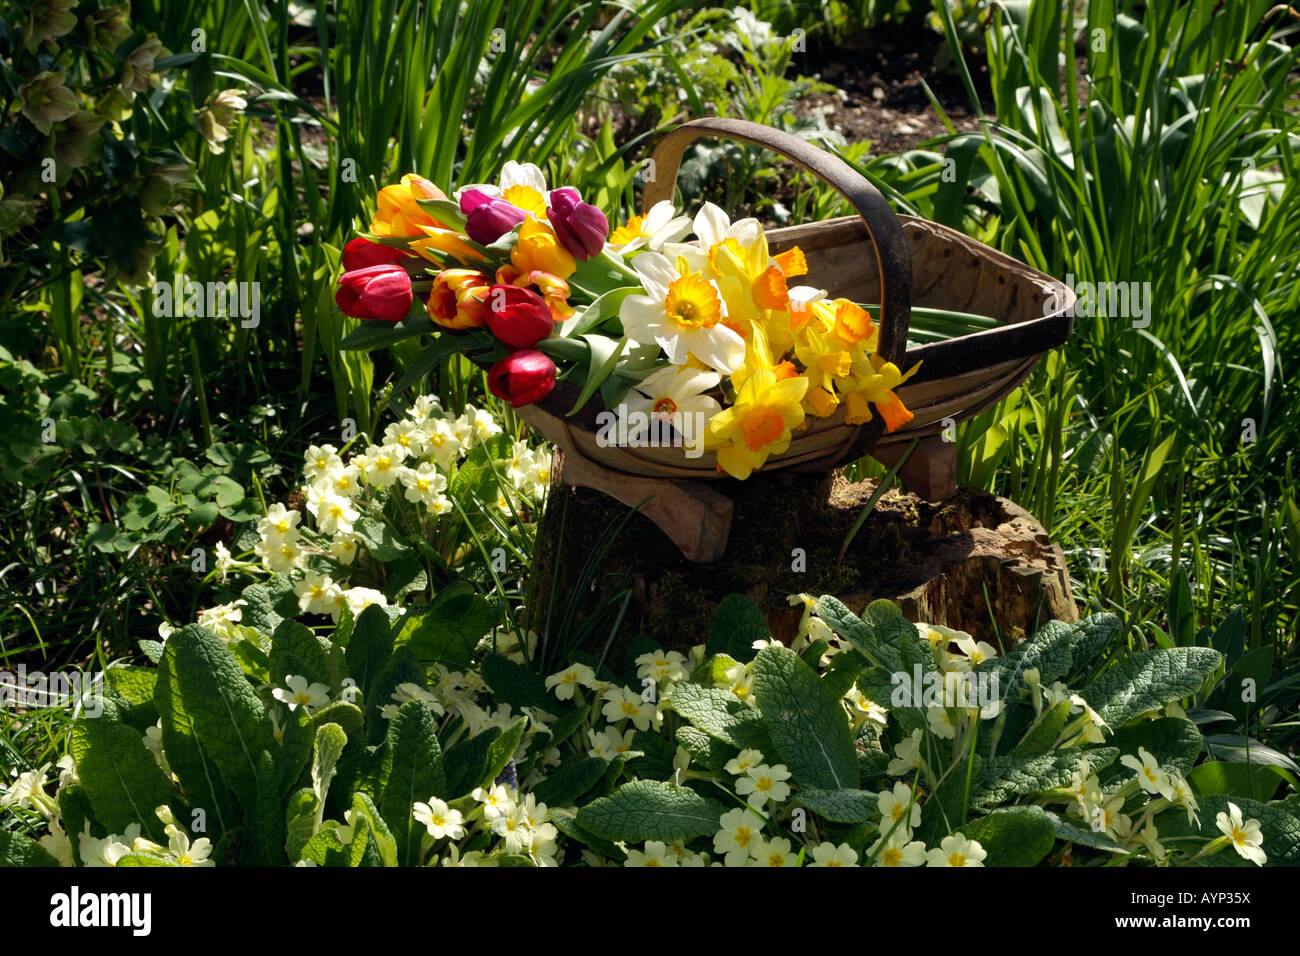 Spring Cut Flowers in a Wooden Garden Trug in an English Country Garden - Stock Image